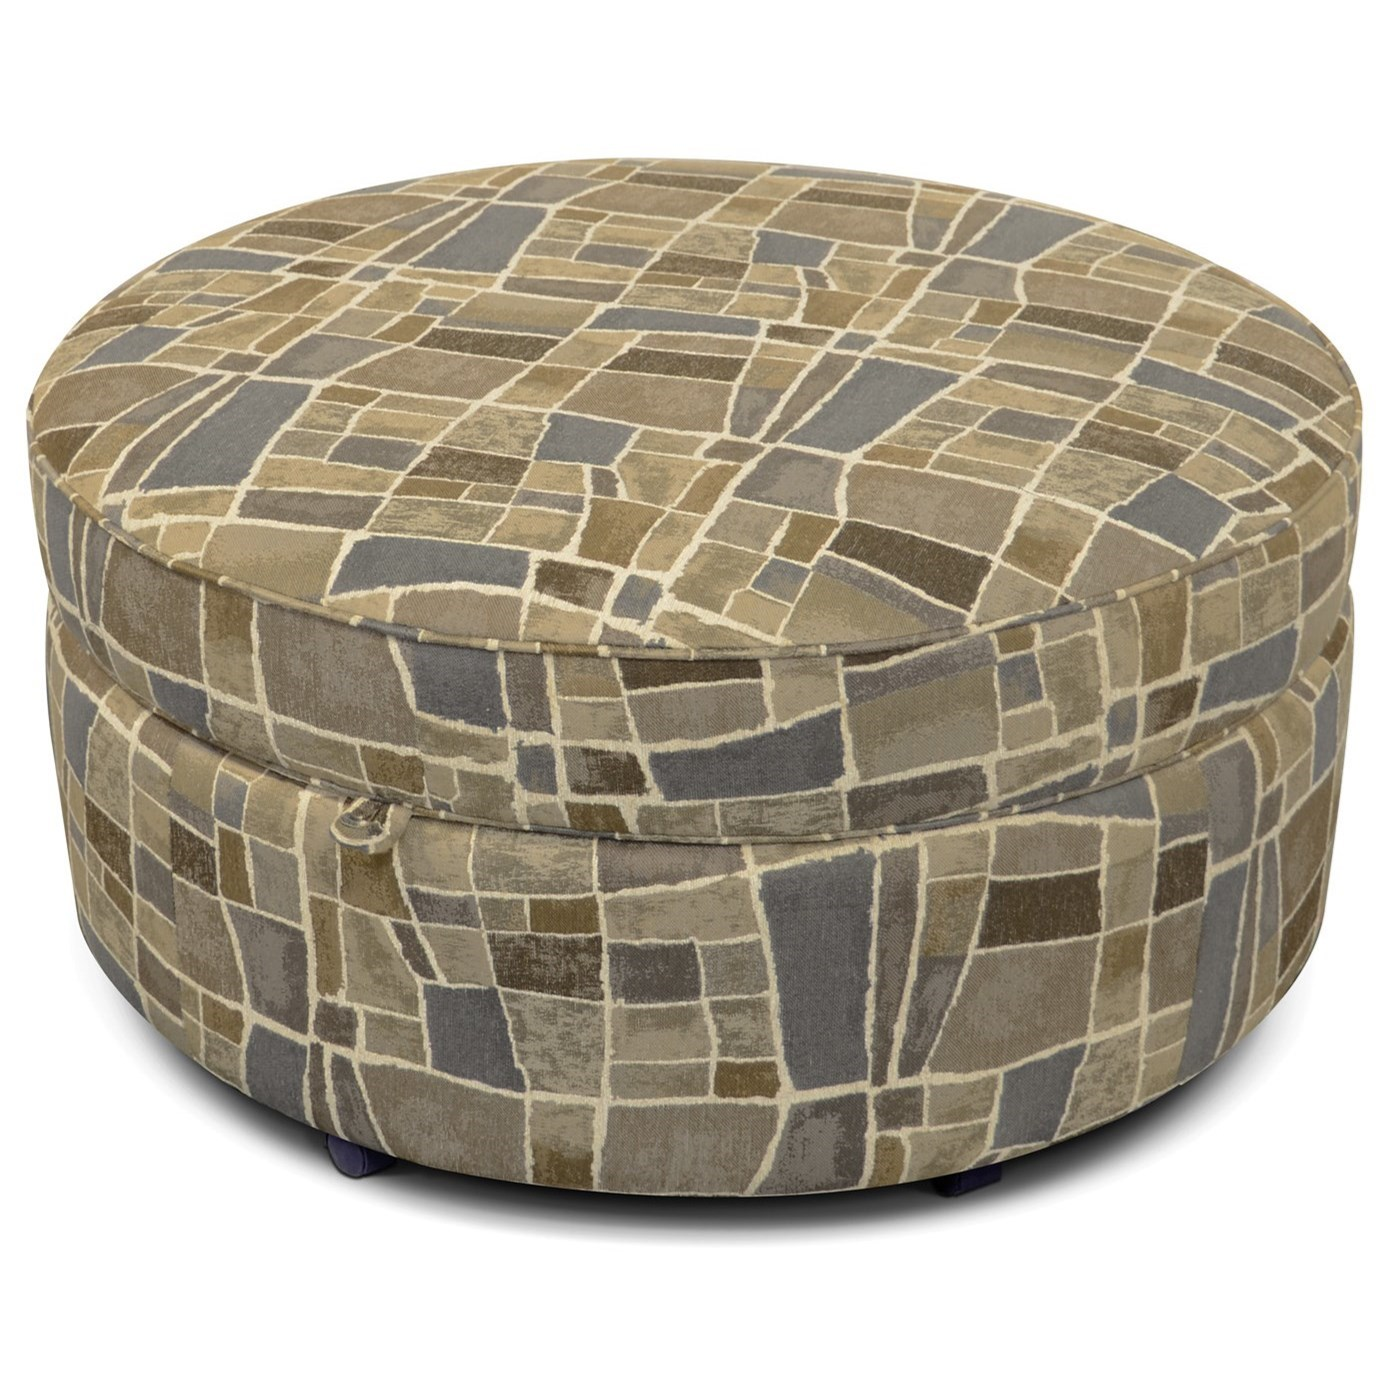 Midtown Upholstered Storage Ottoman by England at Furniture Superstore - Rochester, MN